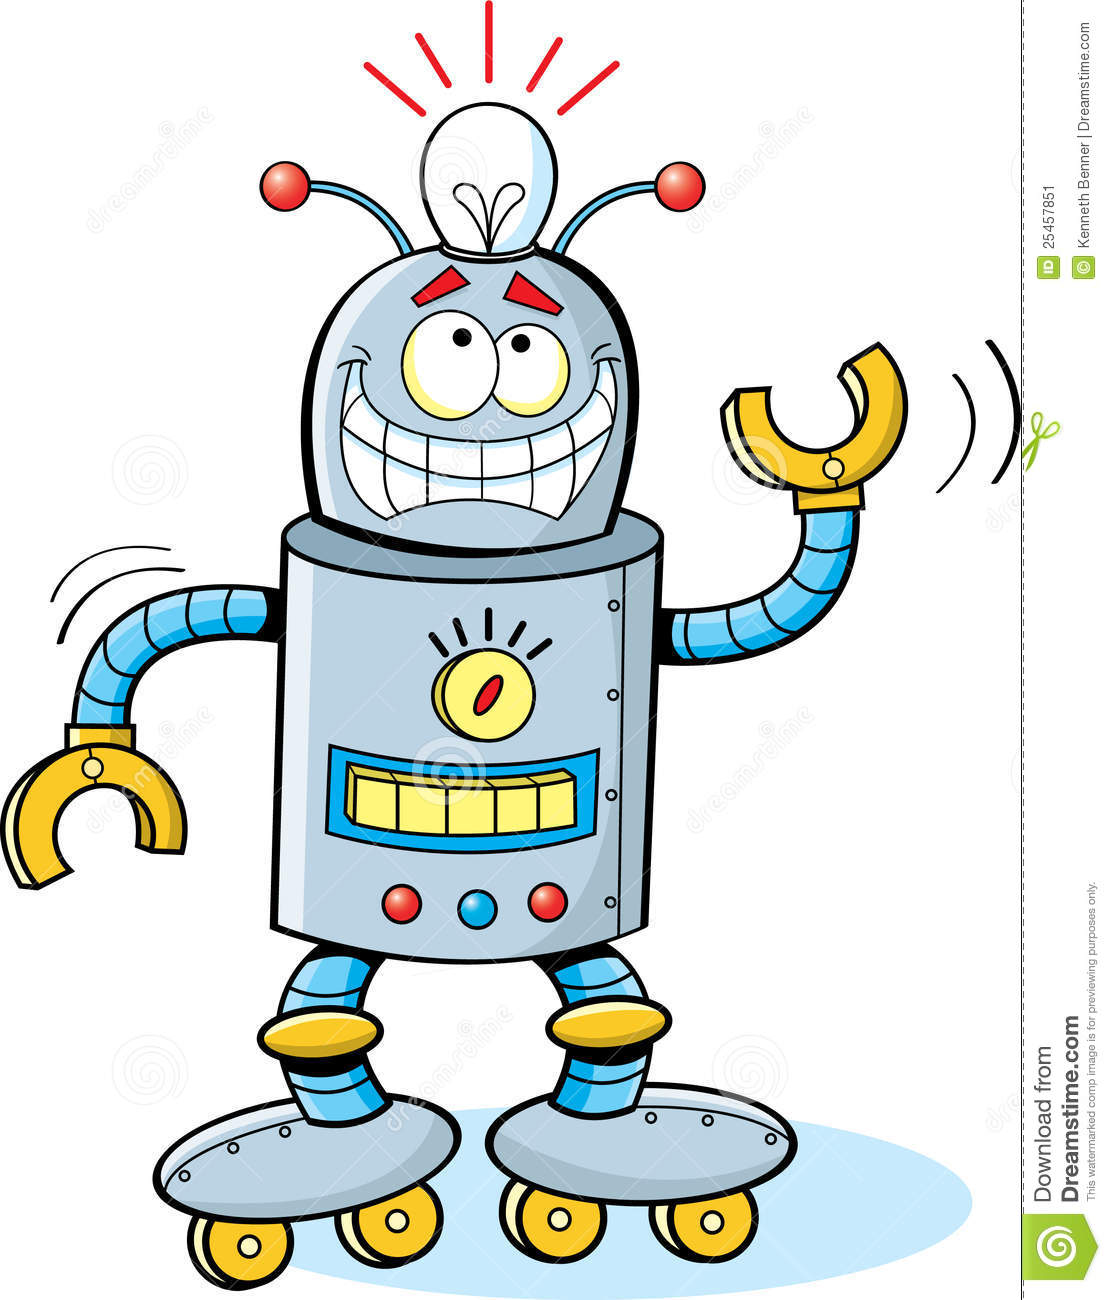 Cartoon Robot Stock Image - Image: 25457851